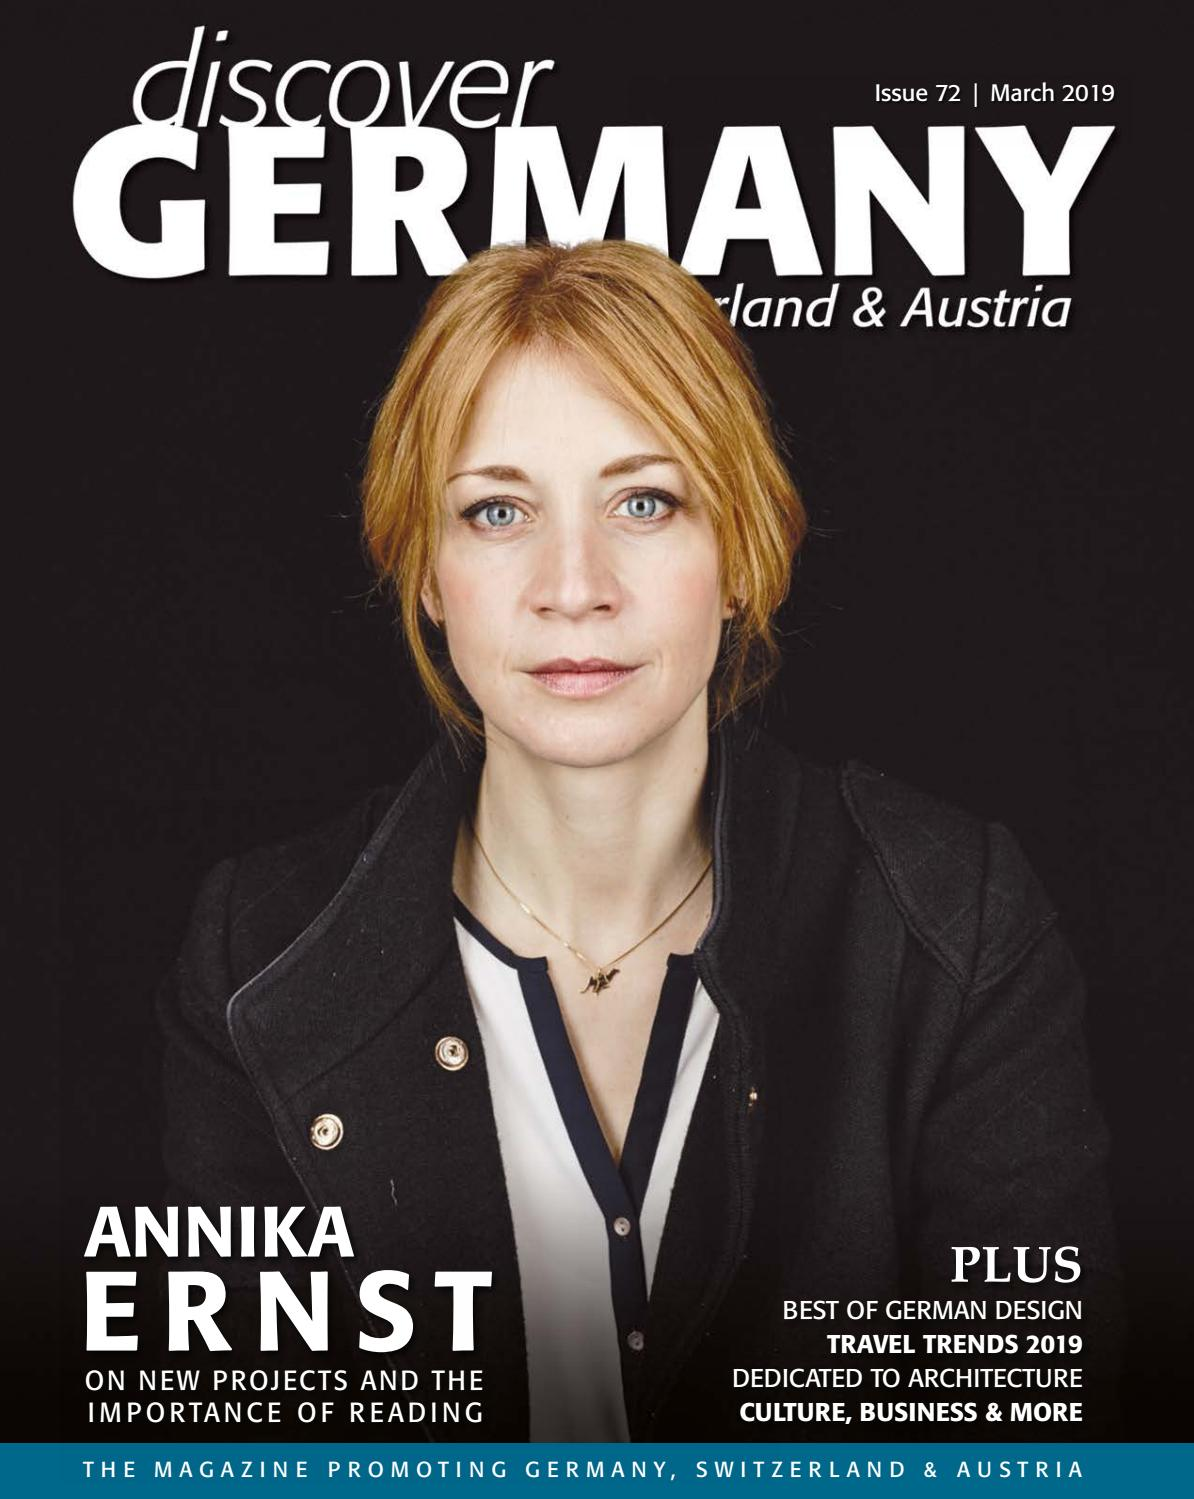 Discover Germany Issue 72 March 2019 By Scan Client Publishing